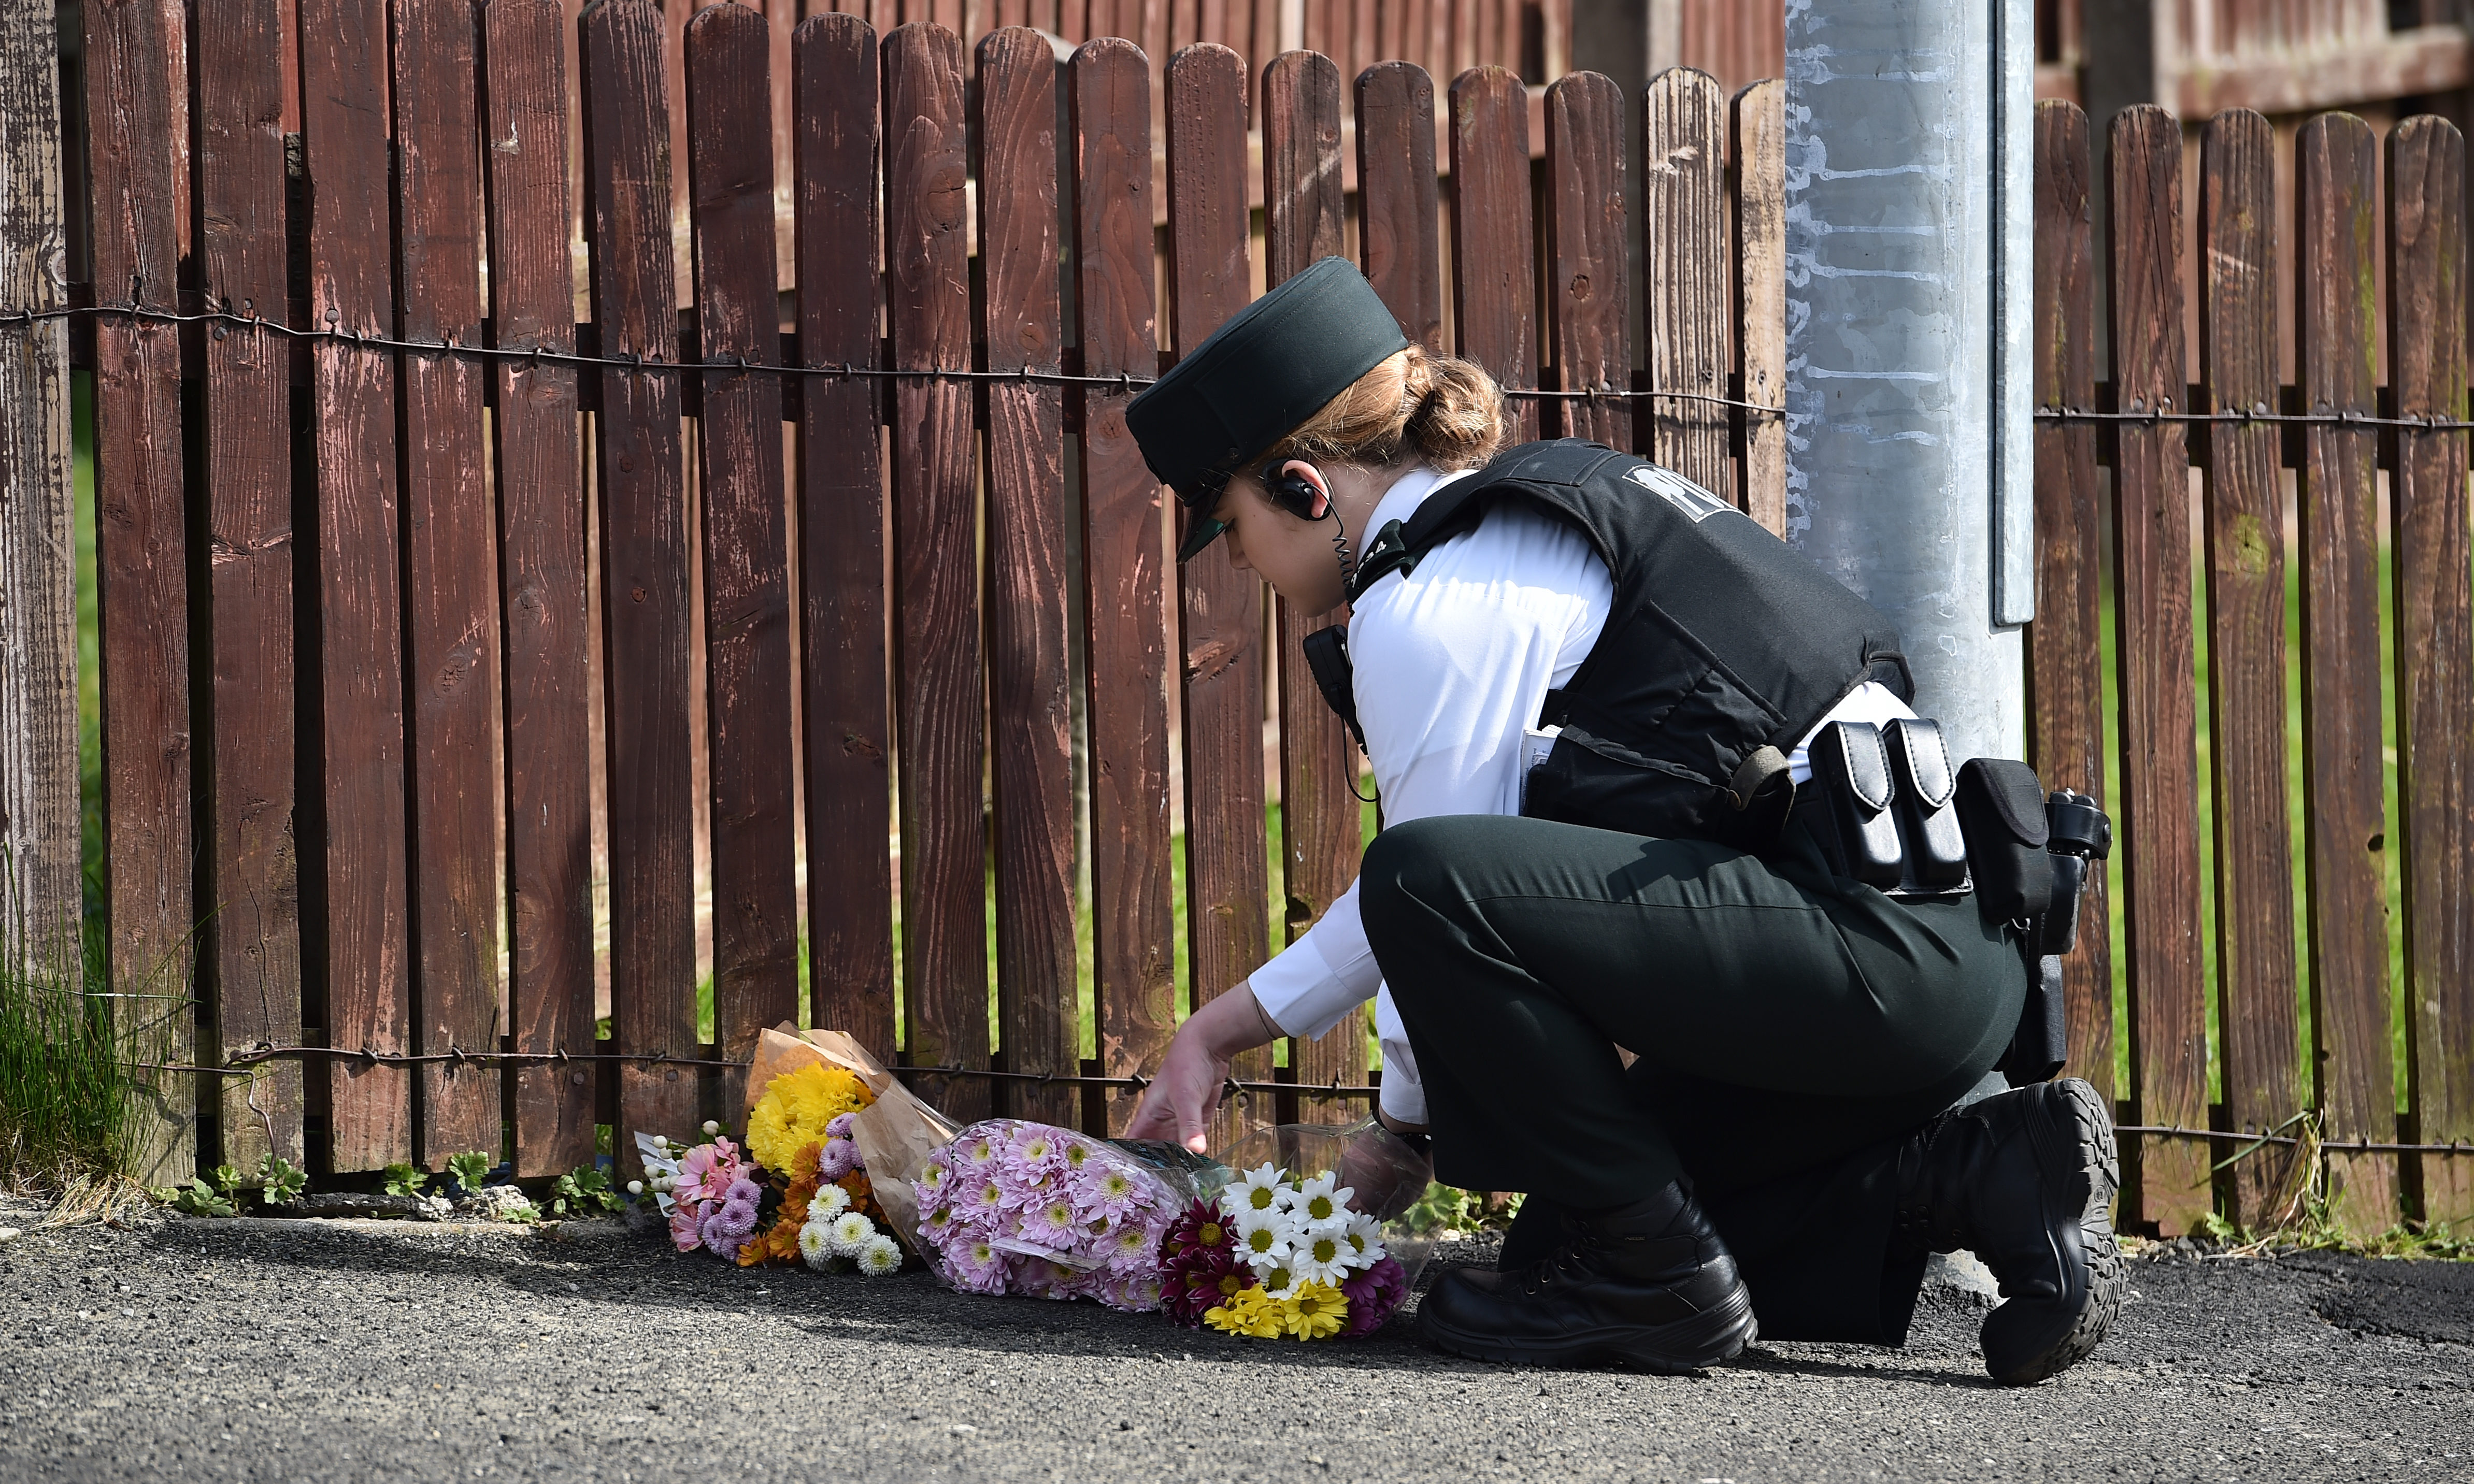 Police attend the scene of a shooting, in which journalist Lyra McKee was killed, on Fanad Drive on April 19, 2019 in Londonderry, Northern Ireland.